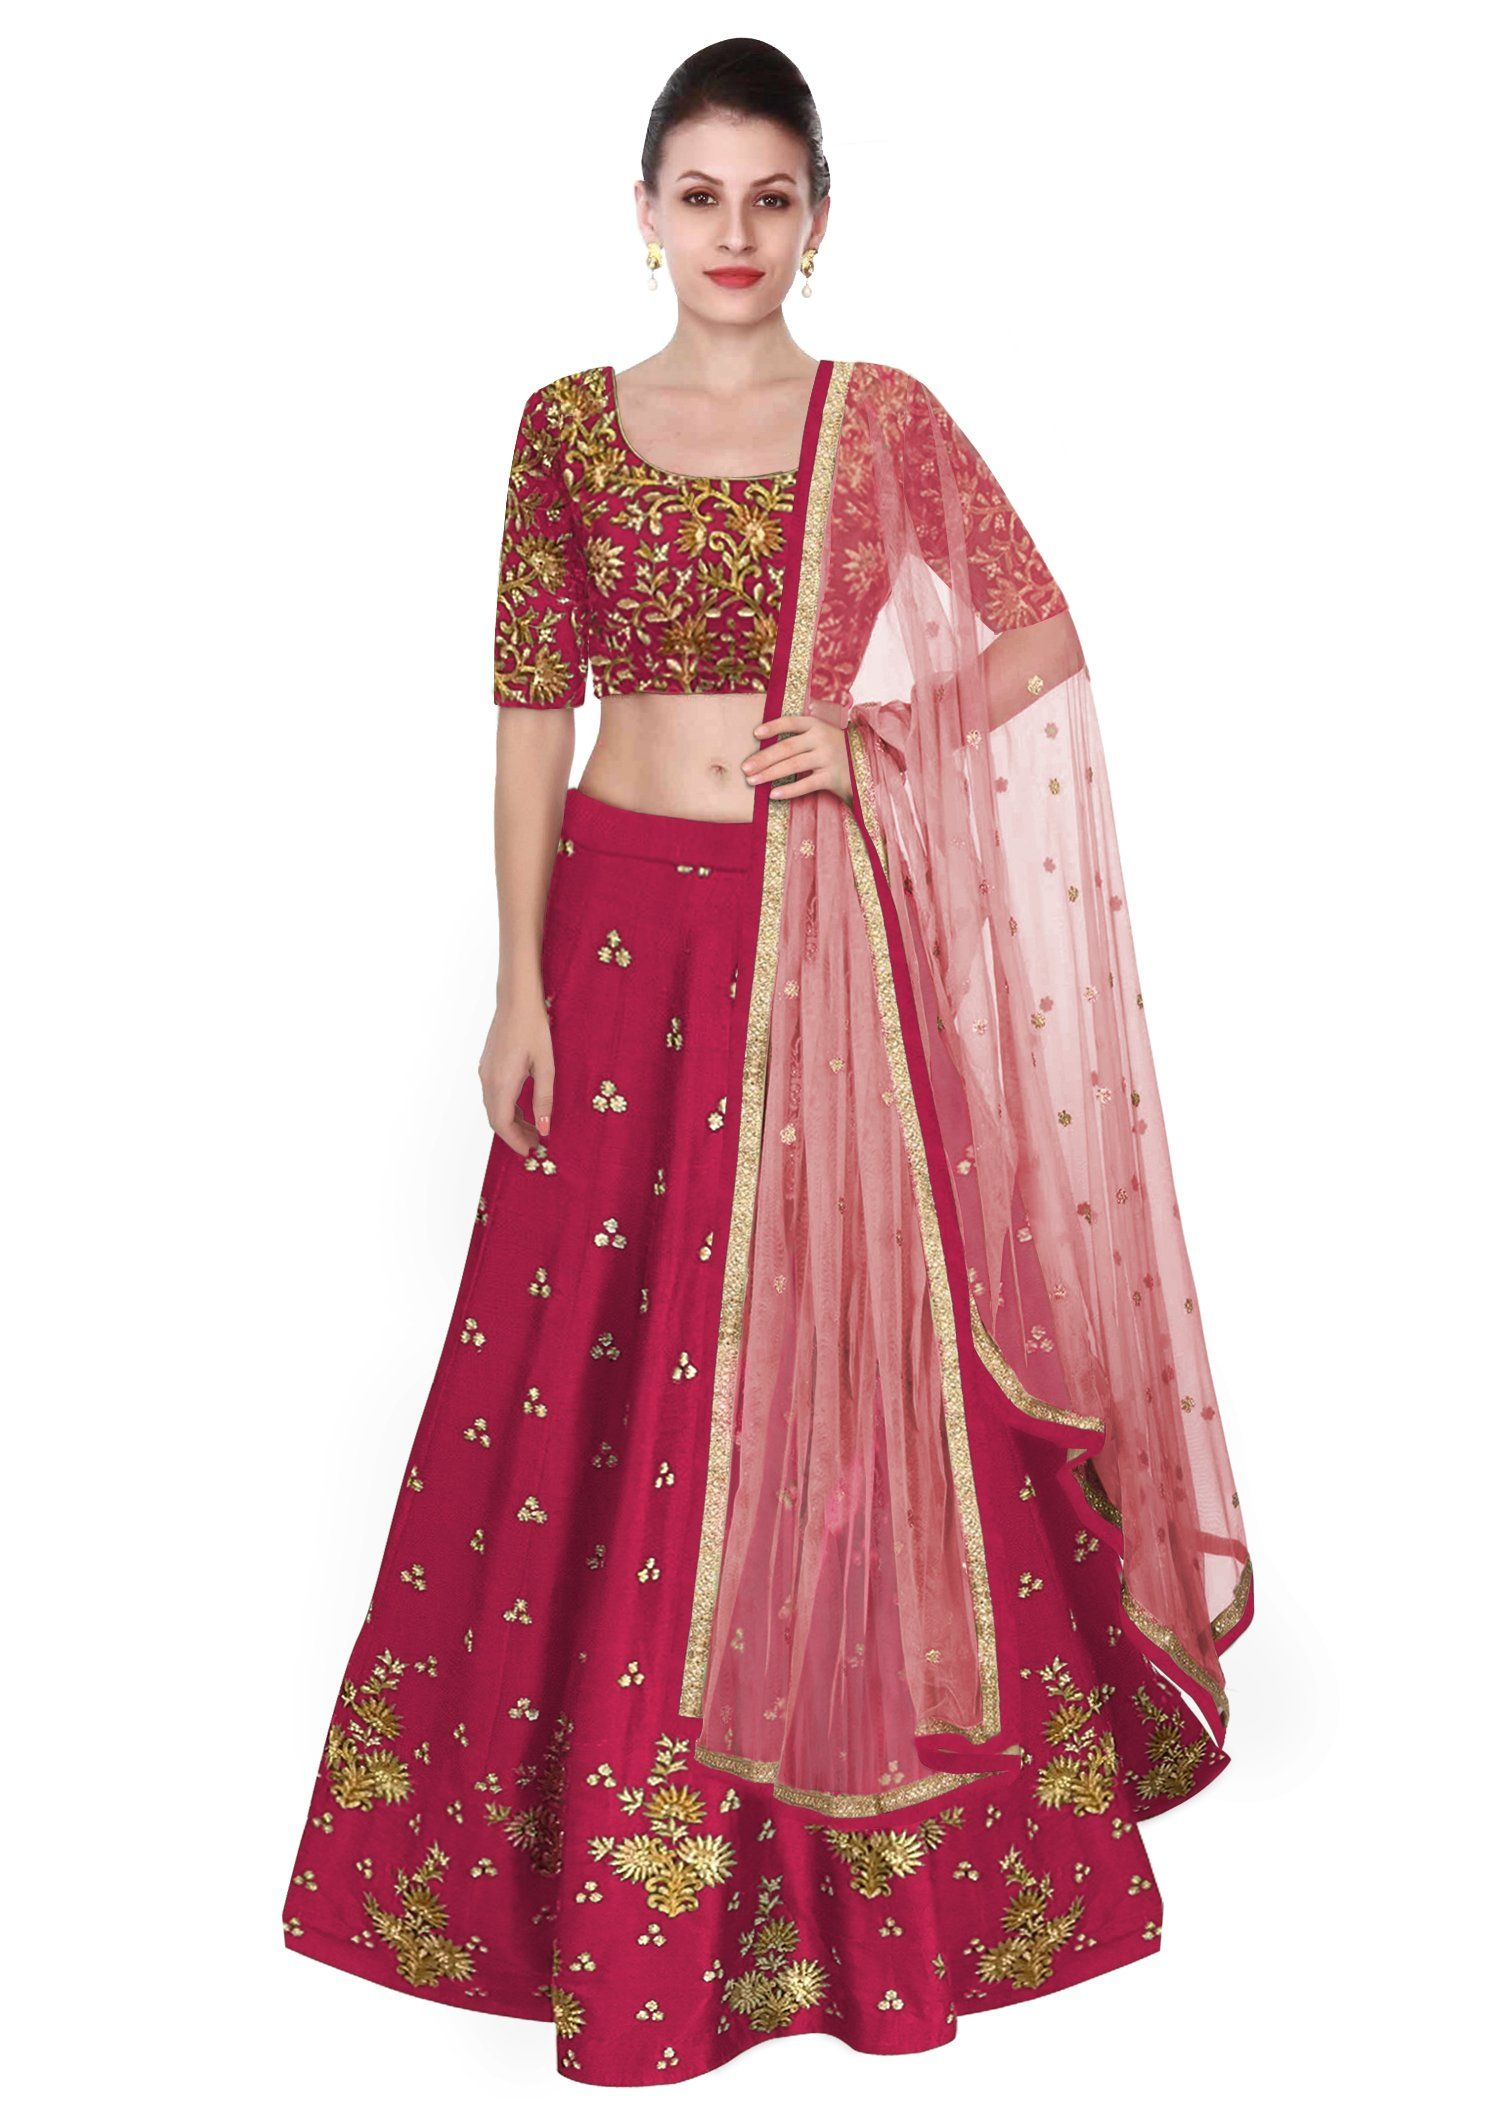 c53fa554bc Featuring the dark pink #Lehenga #Choli in raw silk with zari, gotta  embroidery & light pink dupatta.